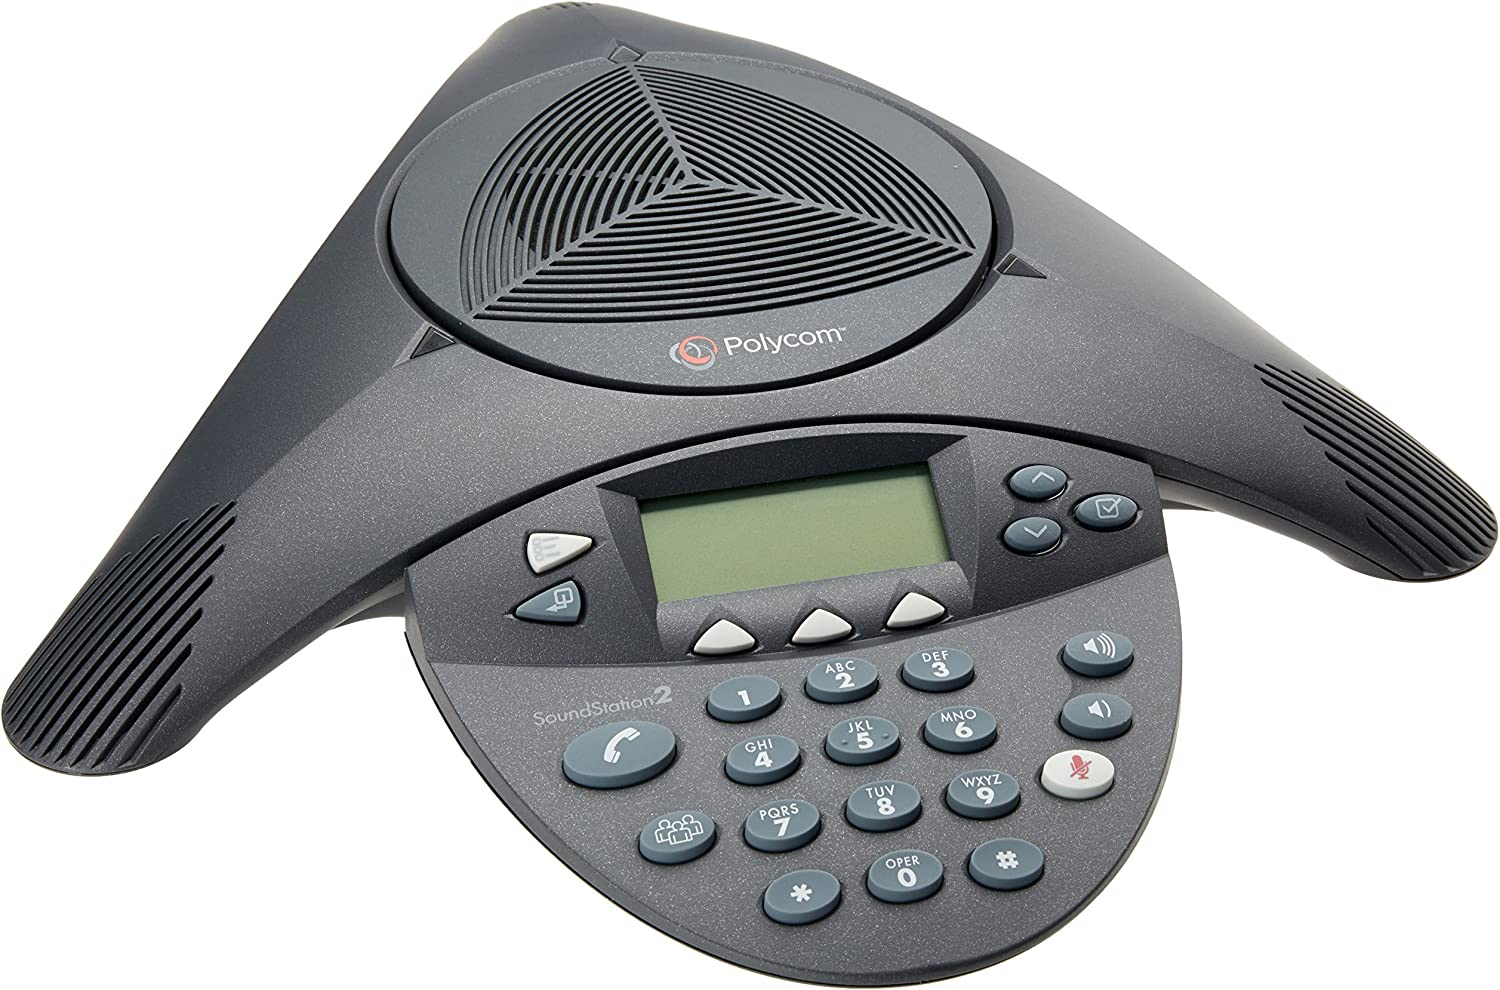 Polycom SoundStation2 Expandable Conference Phone (2200-16200-001) (Renewed) : Office Products